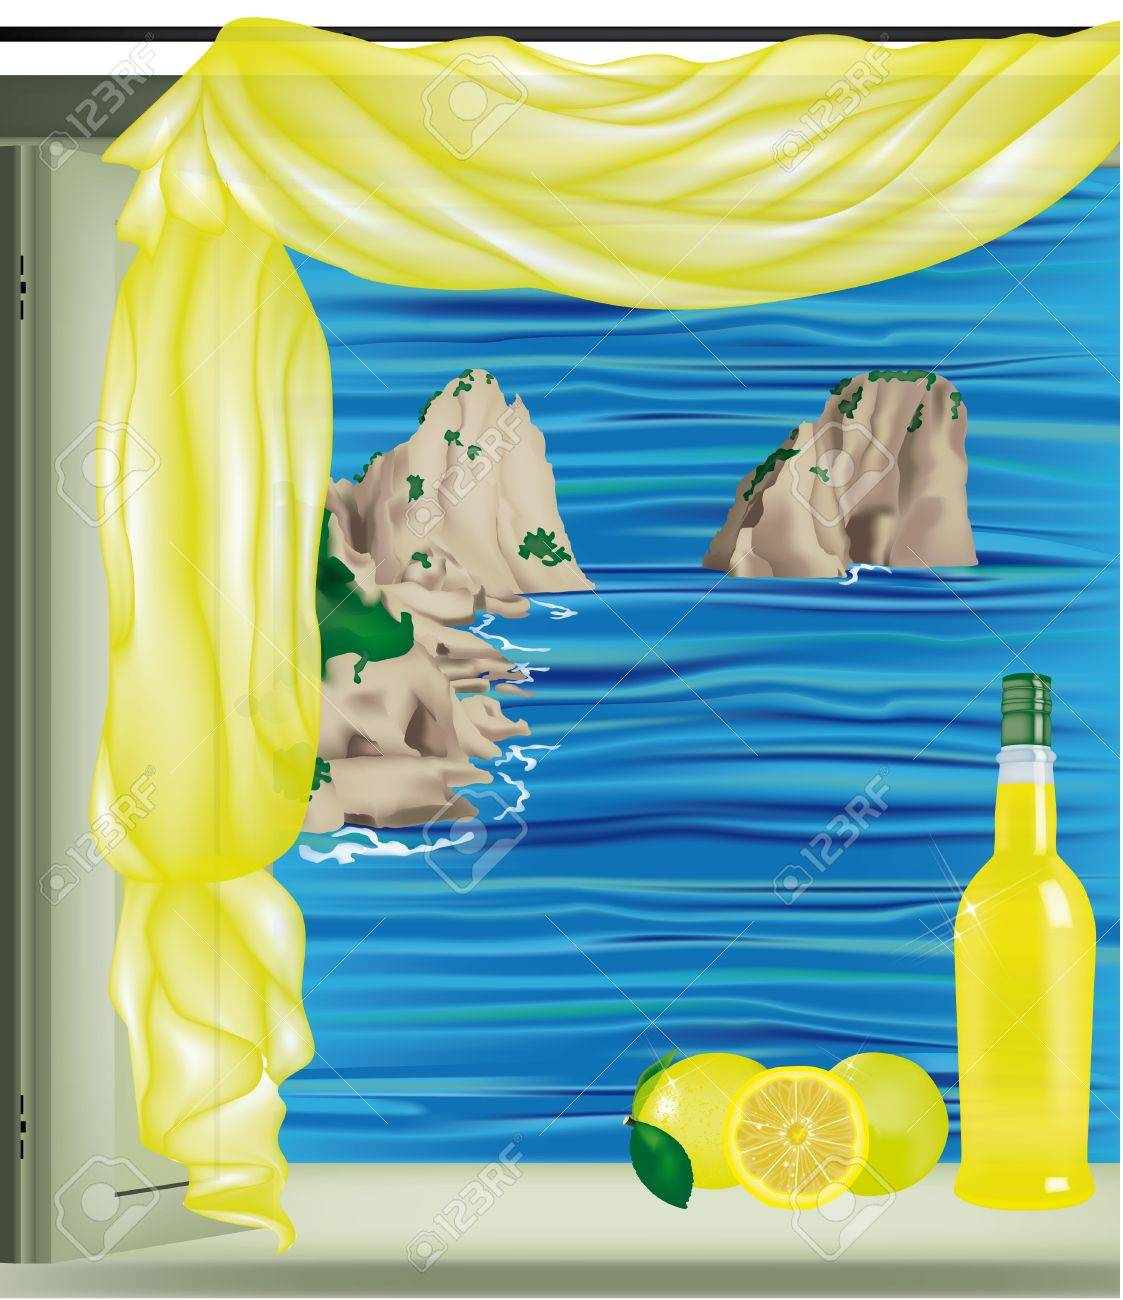 Window on Capri Bay with Faraglioni and Limoncello bottle on the sill Stock Vector - 14228613